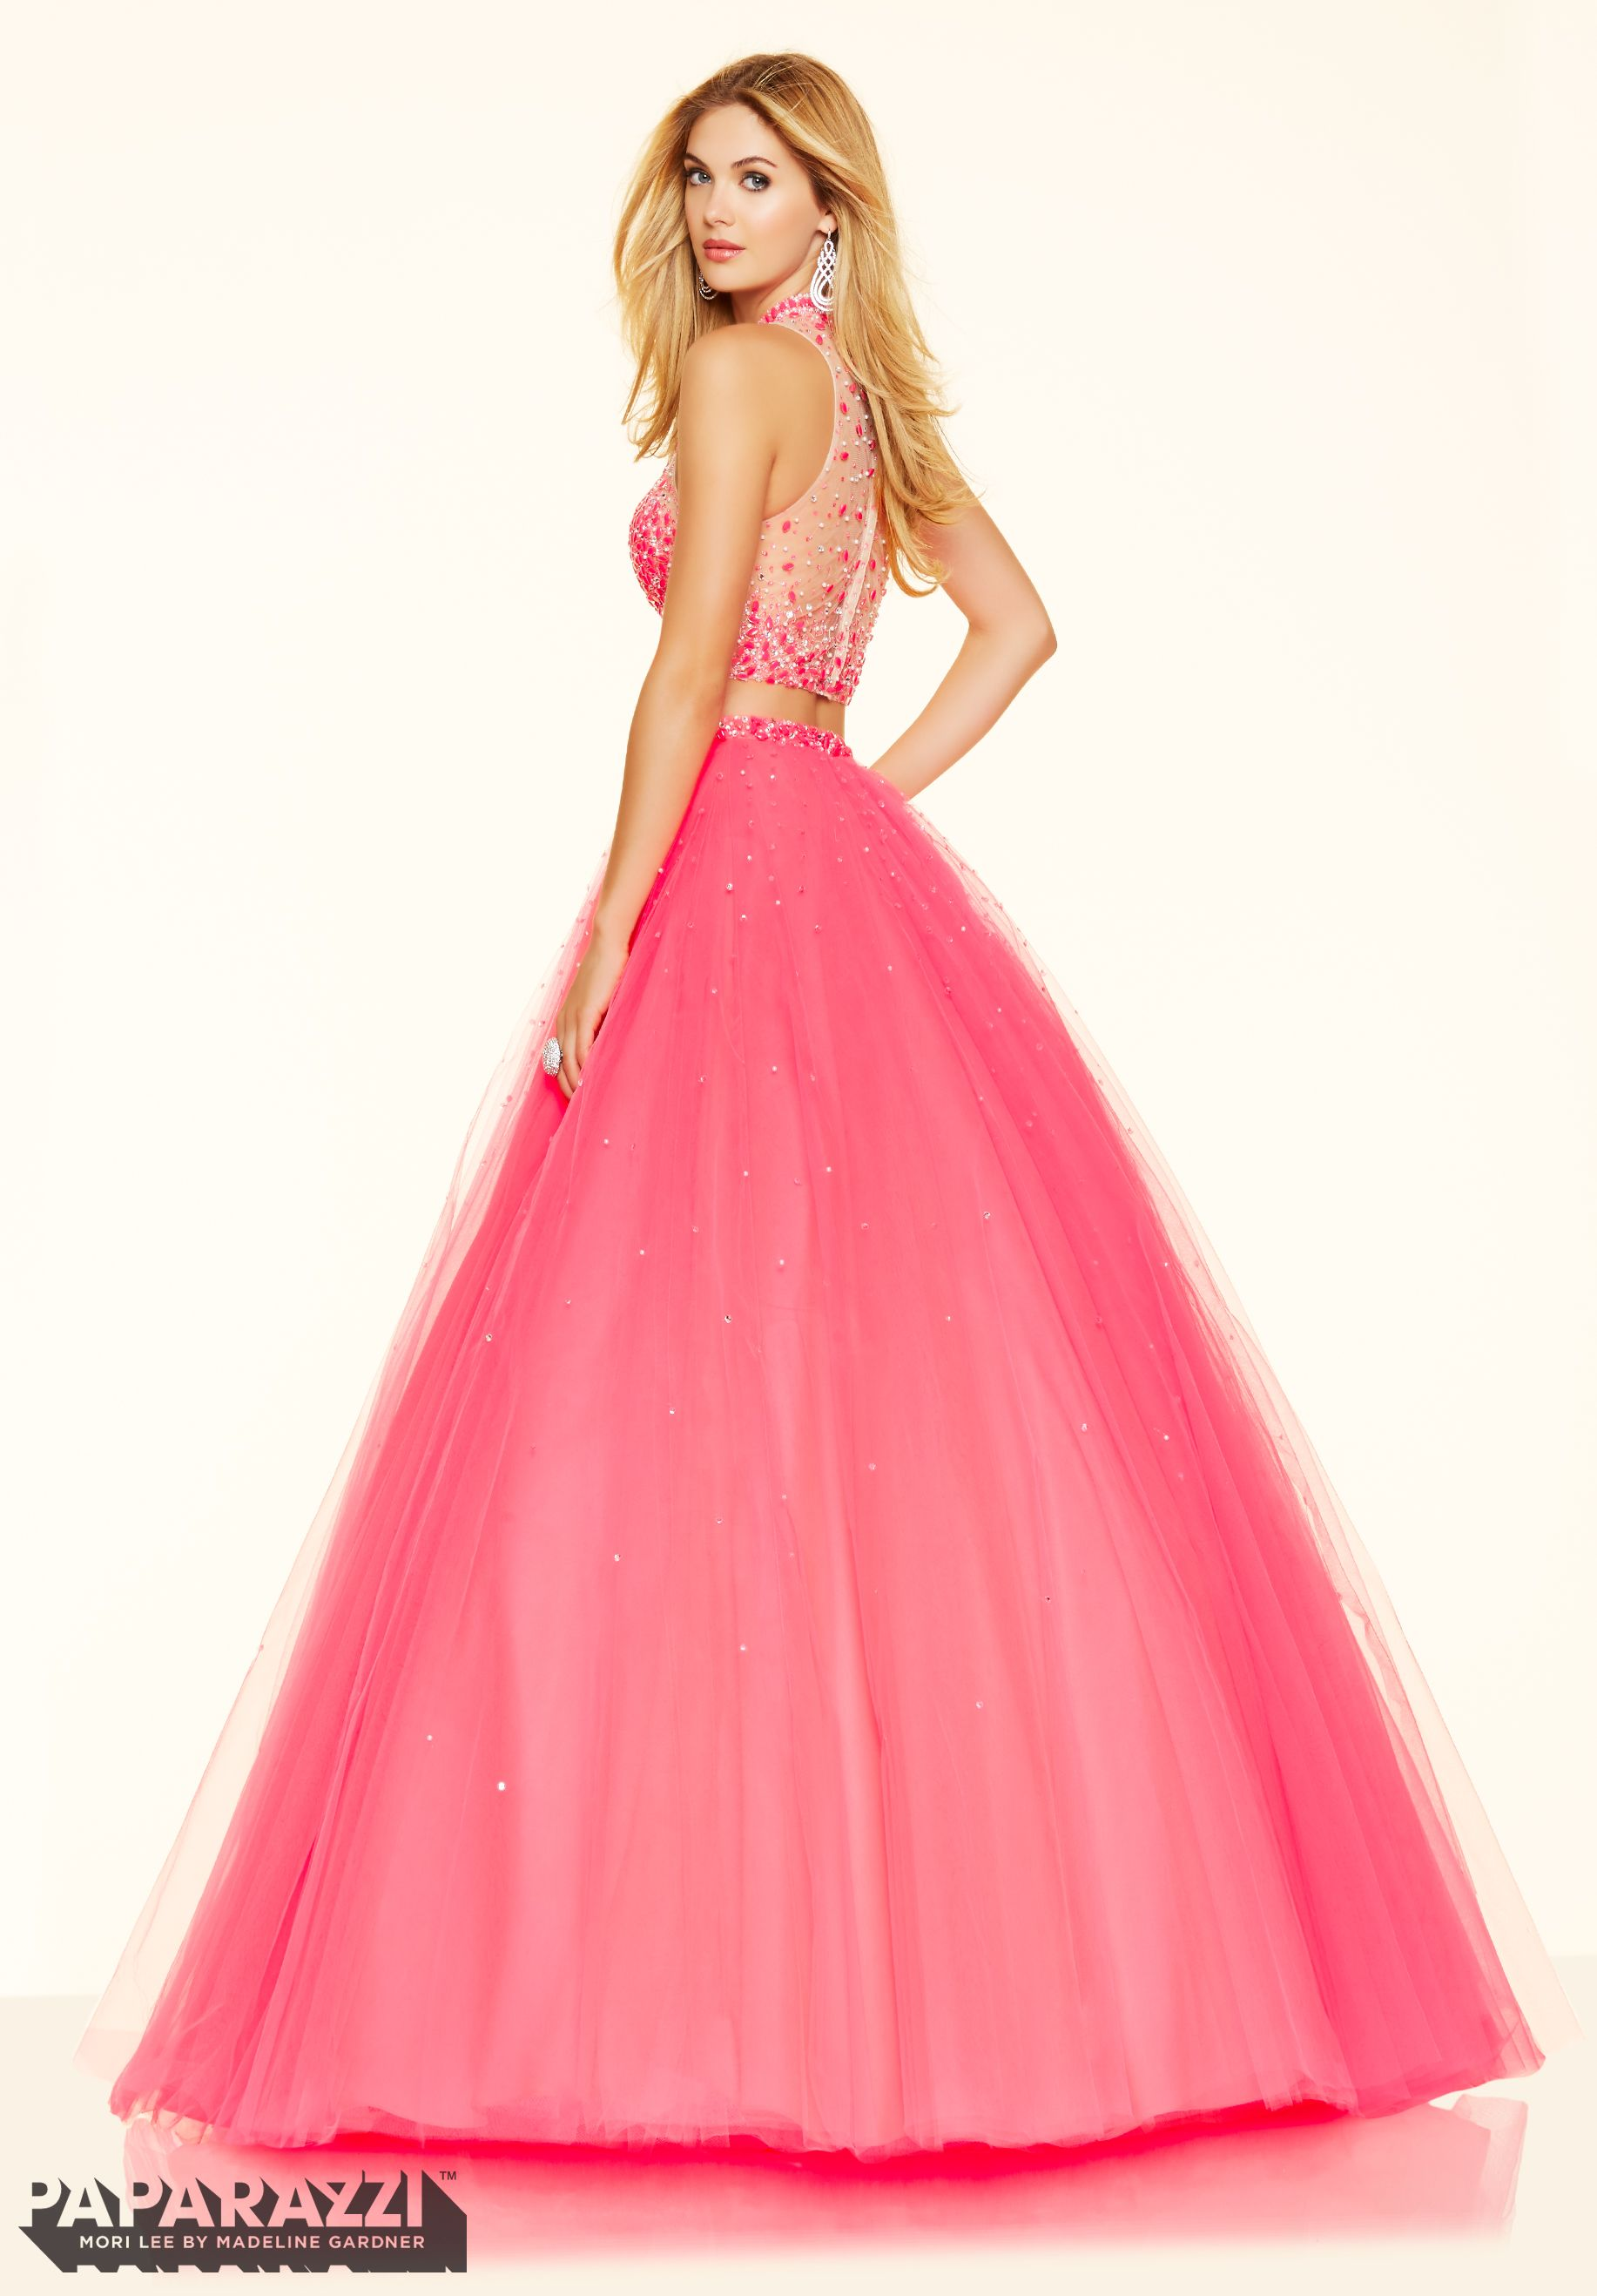 Find this beautiful Paparazzi by Mori Lee dress at WhatchamaCallit ...